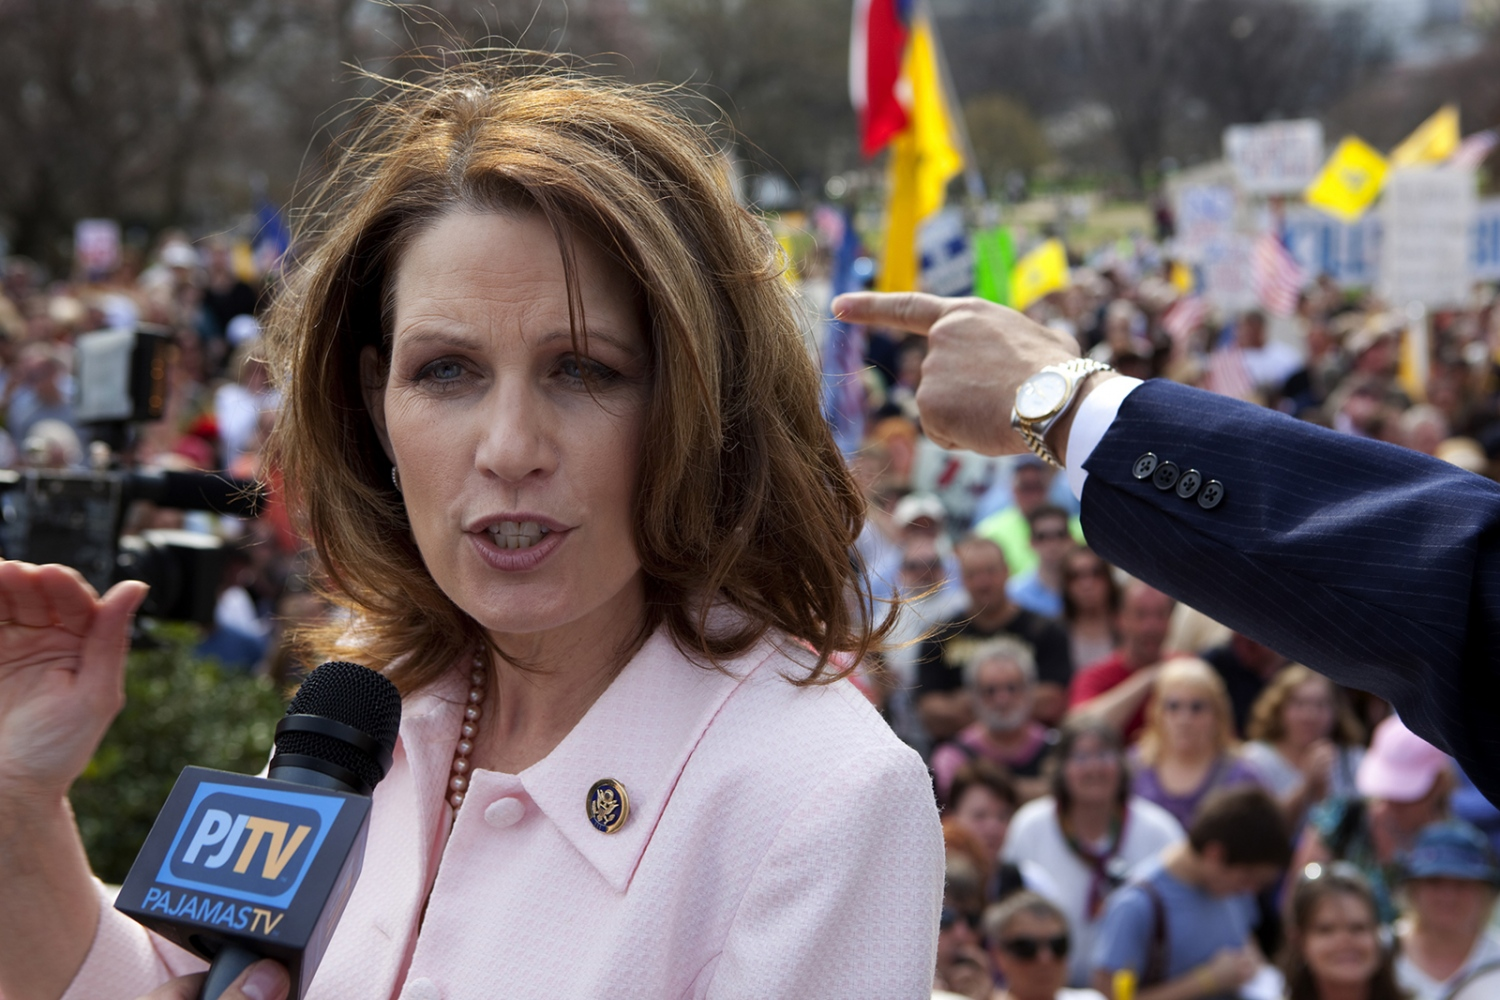 Rep. Michele Bachmann speaks to the press during a health care demonstration outside the U.S. Capitol Building.